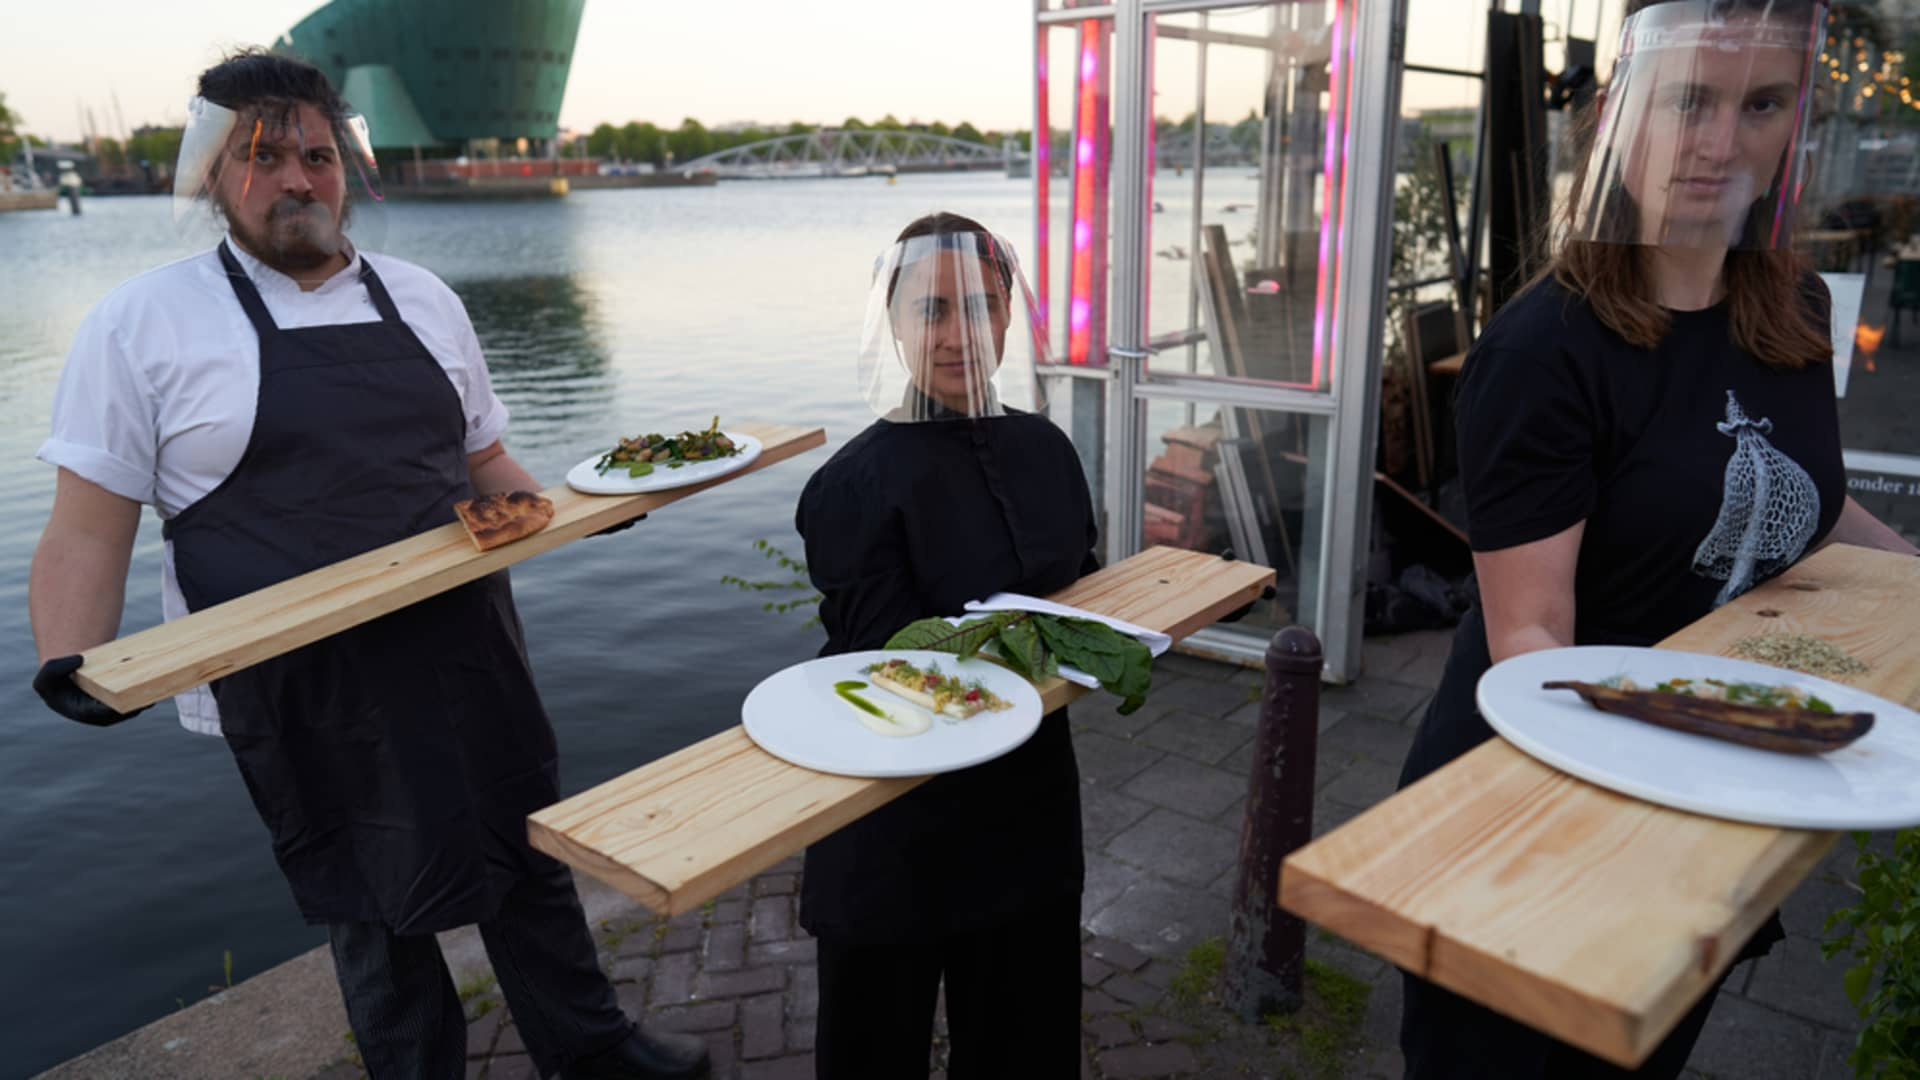 Waiters wear face shields and gloves and rely on long wooden boards to serve diners.